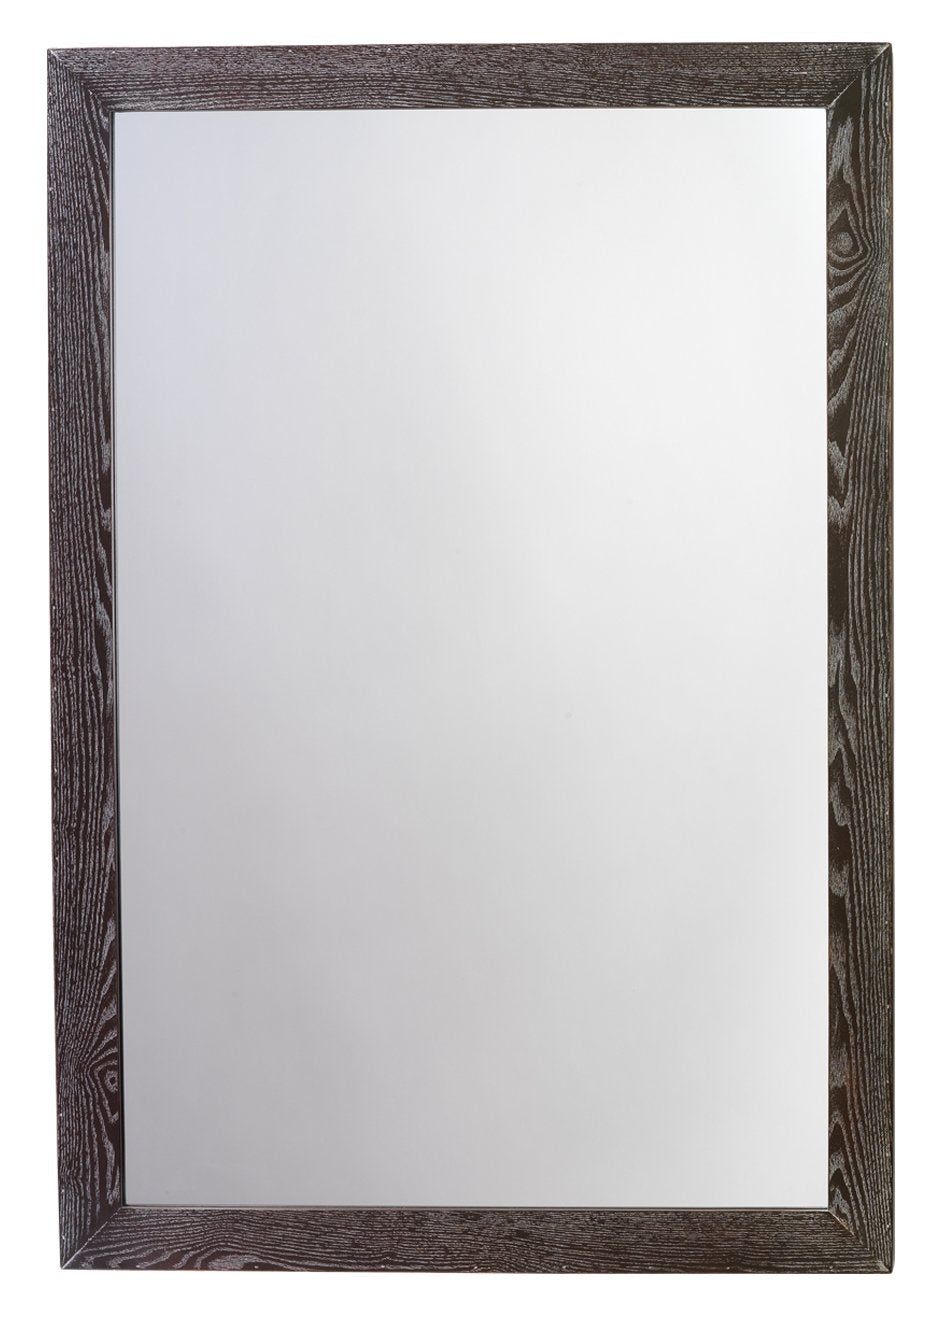 Austere Simple Rectangle Mirror in Dark Wood